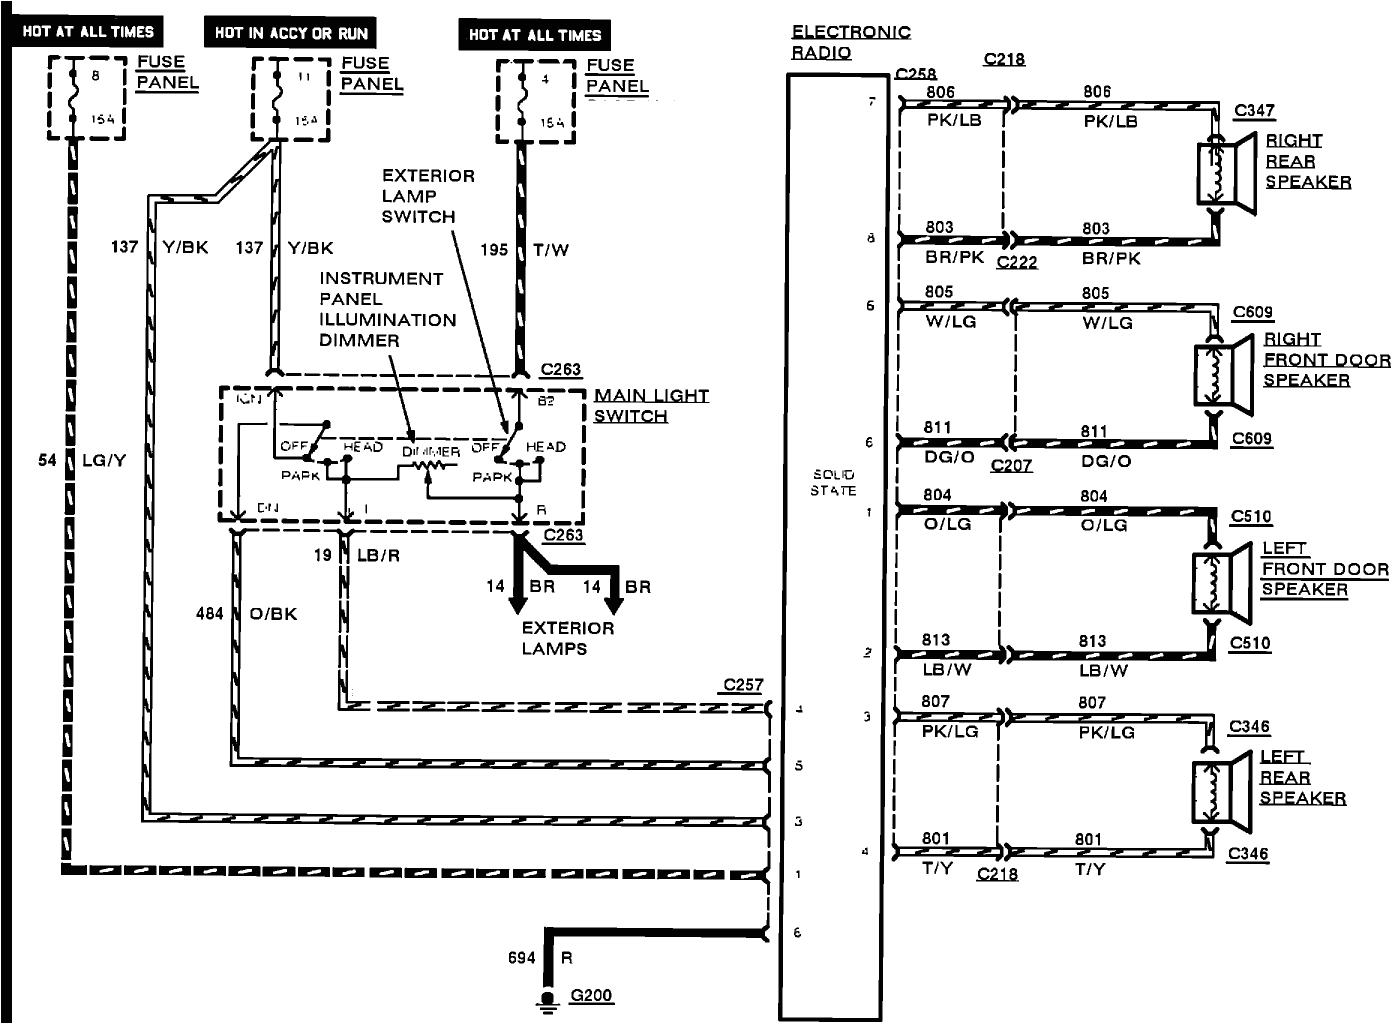 2004 f250 wiring diagrams 100 images ford taurus inside 2012 focus radio diagram for 2002 ford focus wiring diagram jpg